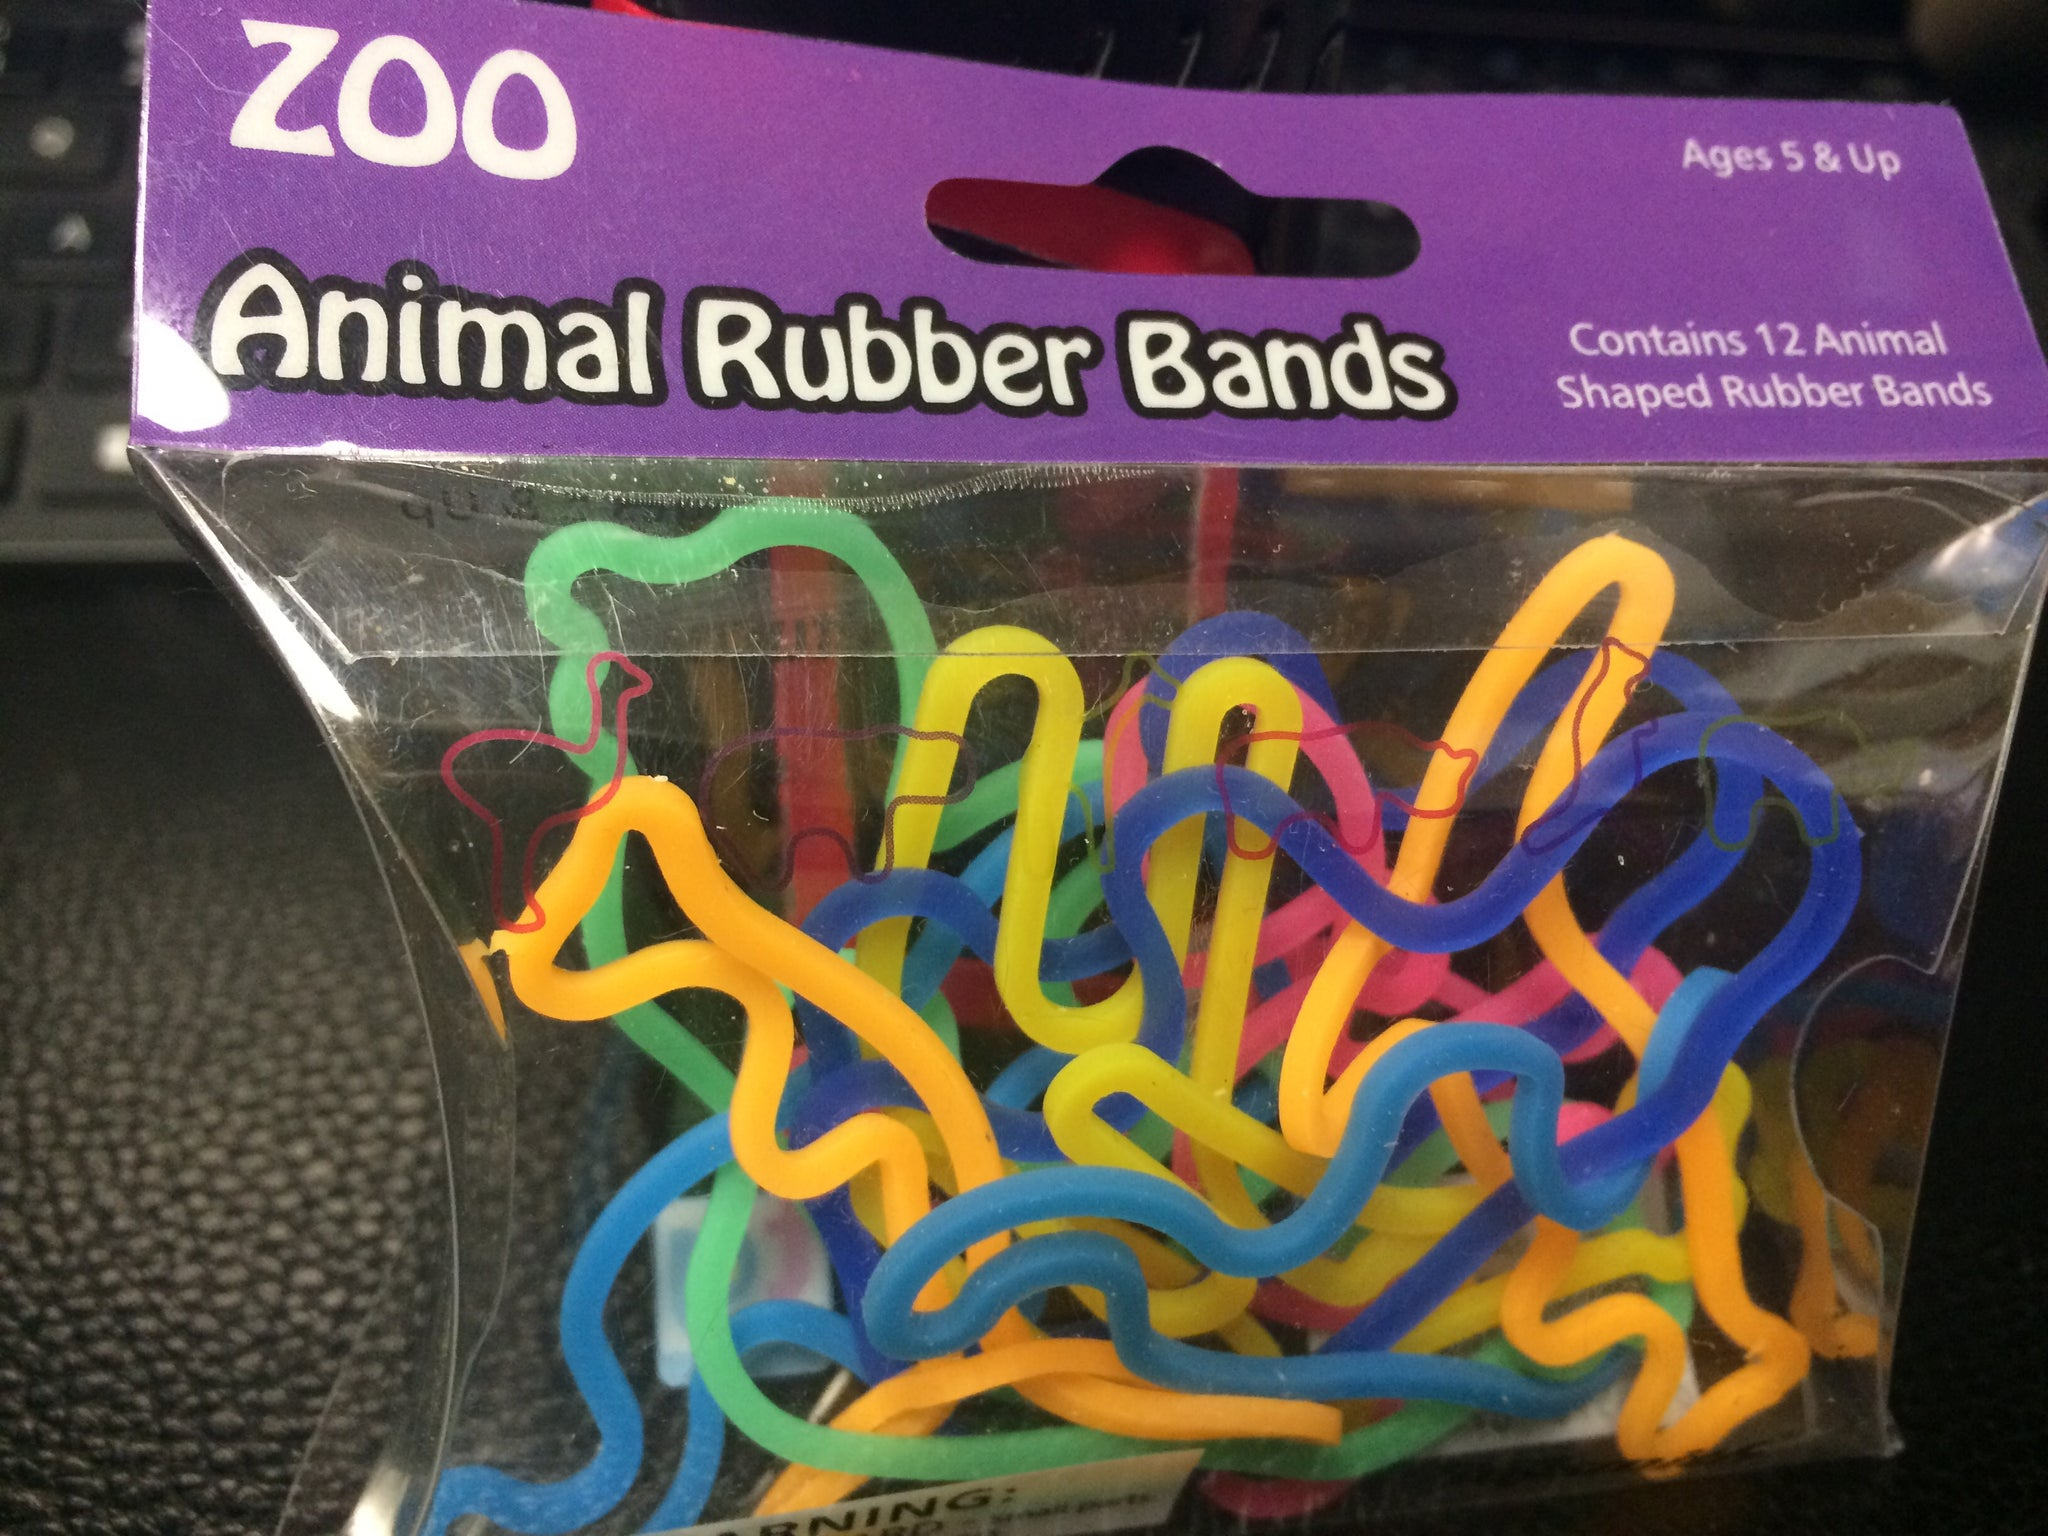 Animal Rubber Bands (Zoo) 12 count